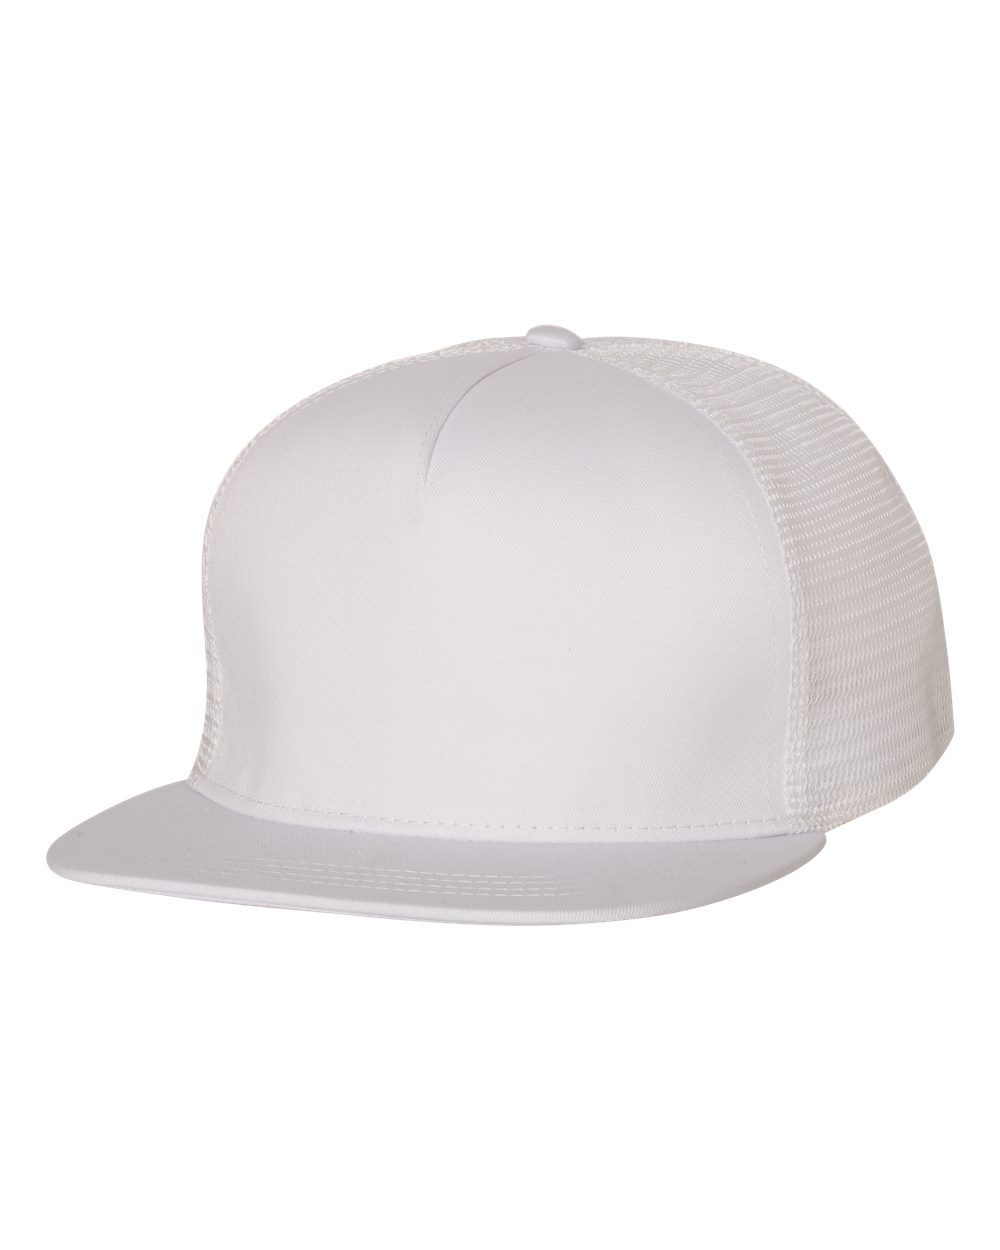 Mega Cap 6997C - Flat Bill Five-Panel Trucker Cap